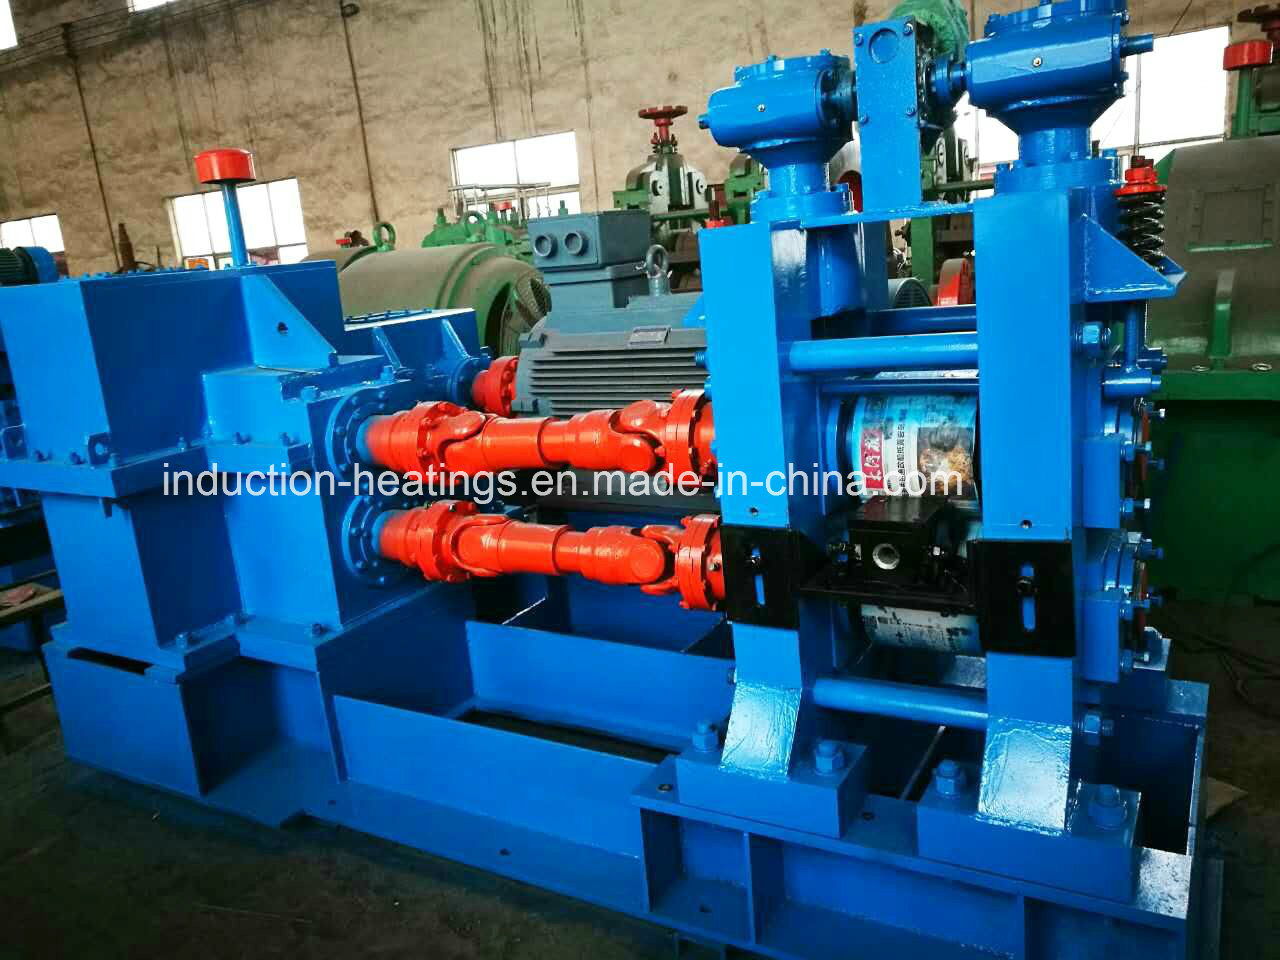 Super Audio Frequency Induction Heating Annealing Furnace for Wire Rebar